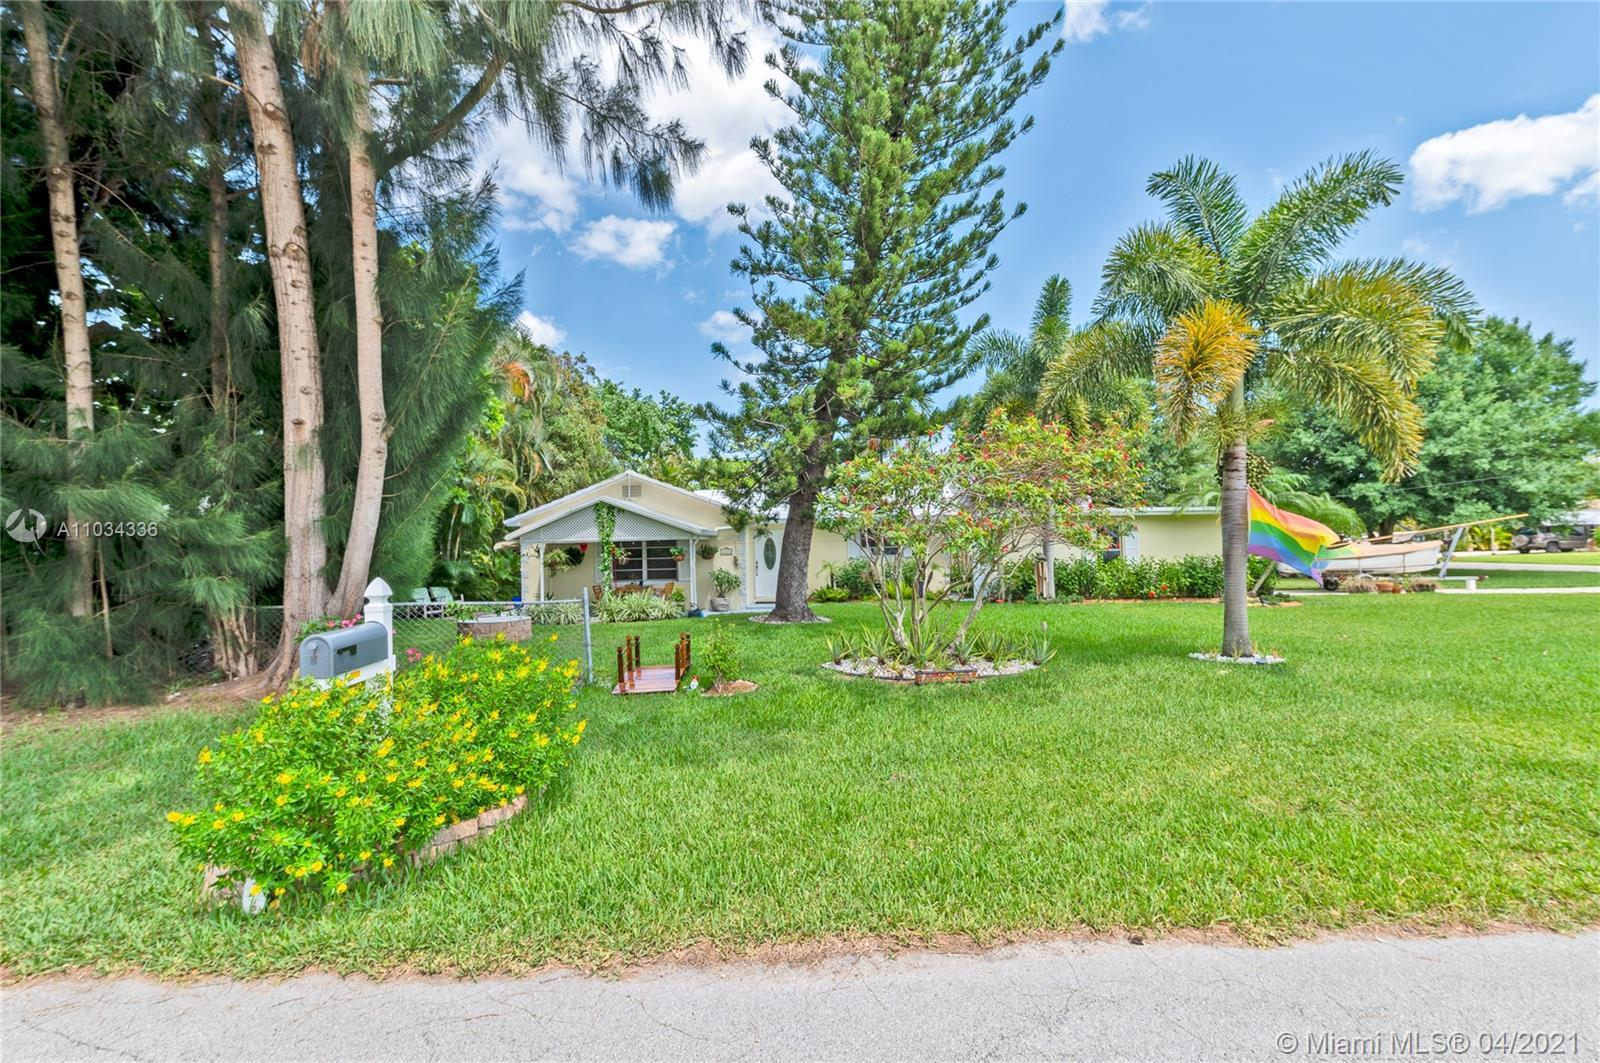 Single family home 2 bed 2 bathrooms . CHULA VISTA within City limits of Fort. Lauderdale in a conne